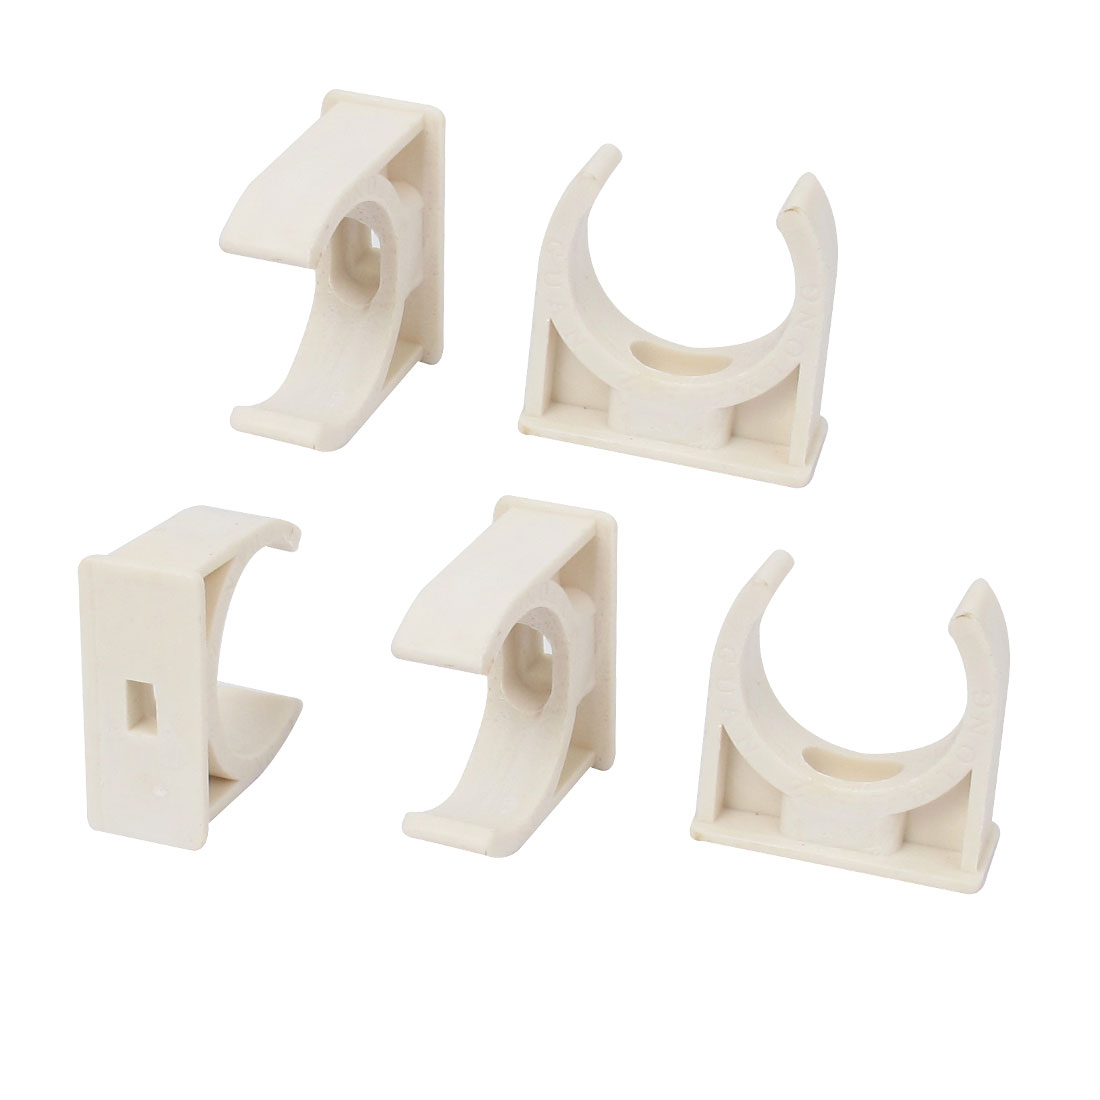 5pcs 31mm Diameter White Water Supply Pipe Tube Hose Clamps Clips Fittings